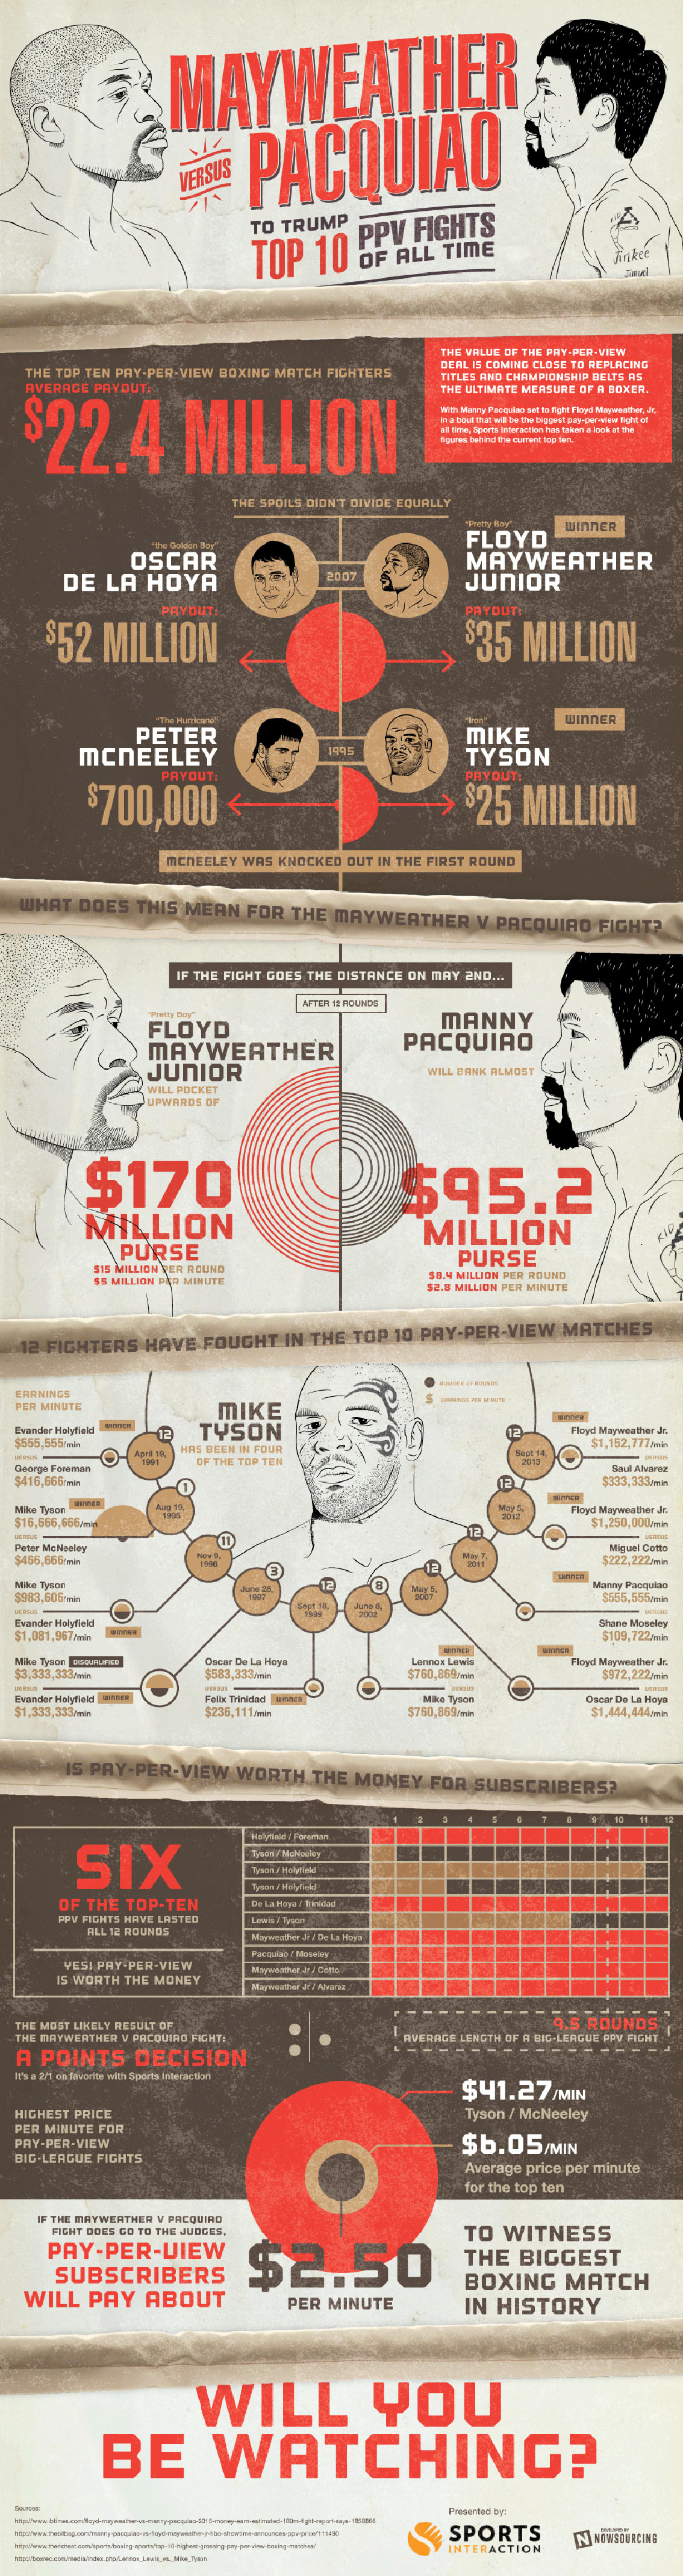 Mayweather vs Pacquiao Pay Per View Record - Boxing Infographic